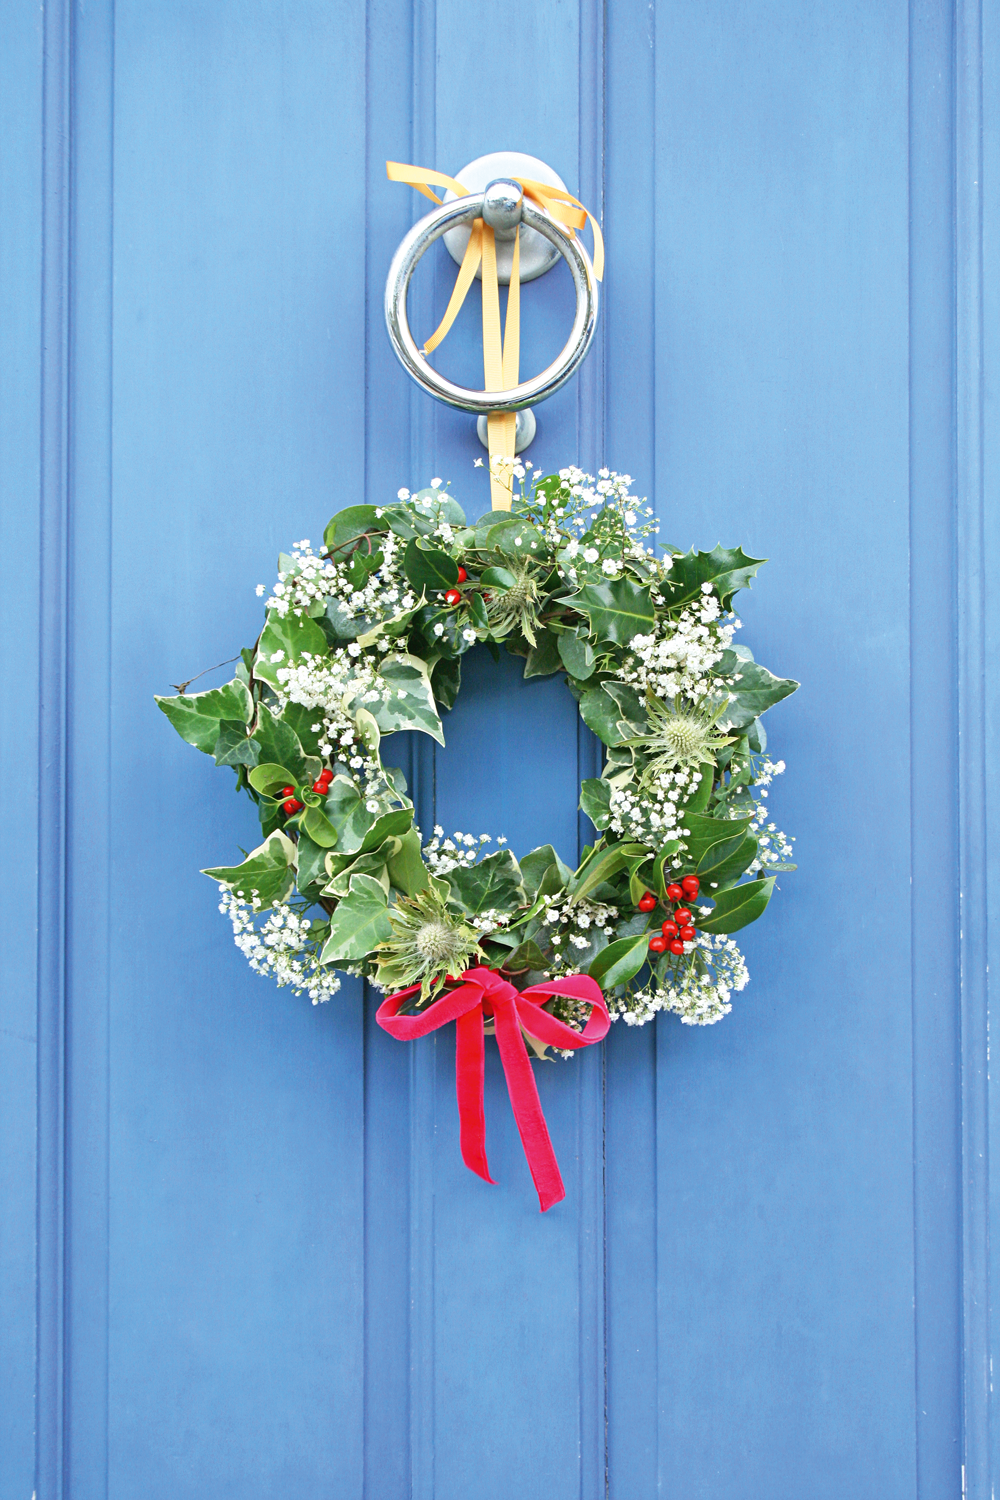 Make | Foraged Christmas wreath | The Simple Things